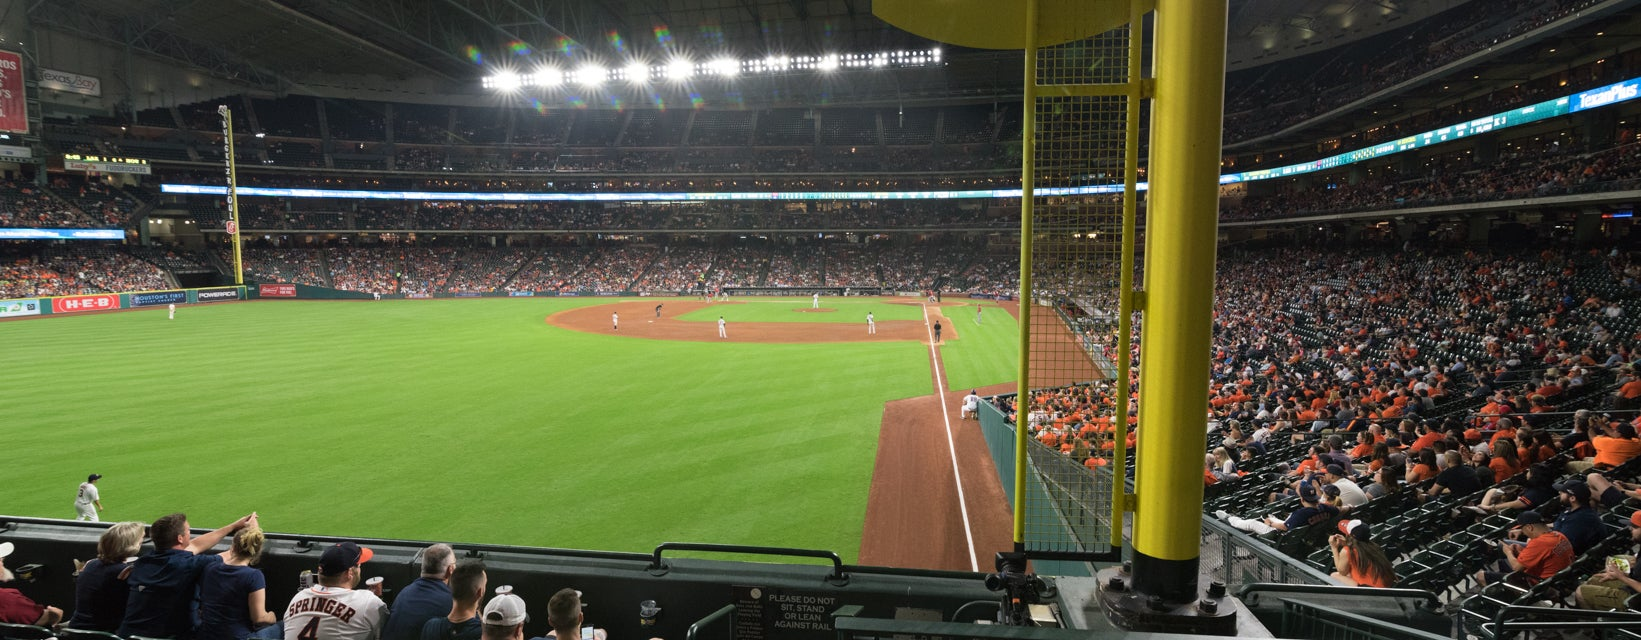 Seat view from Crawford Box